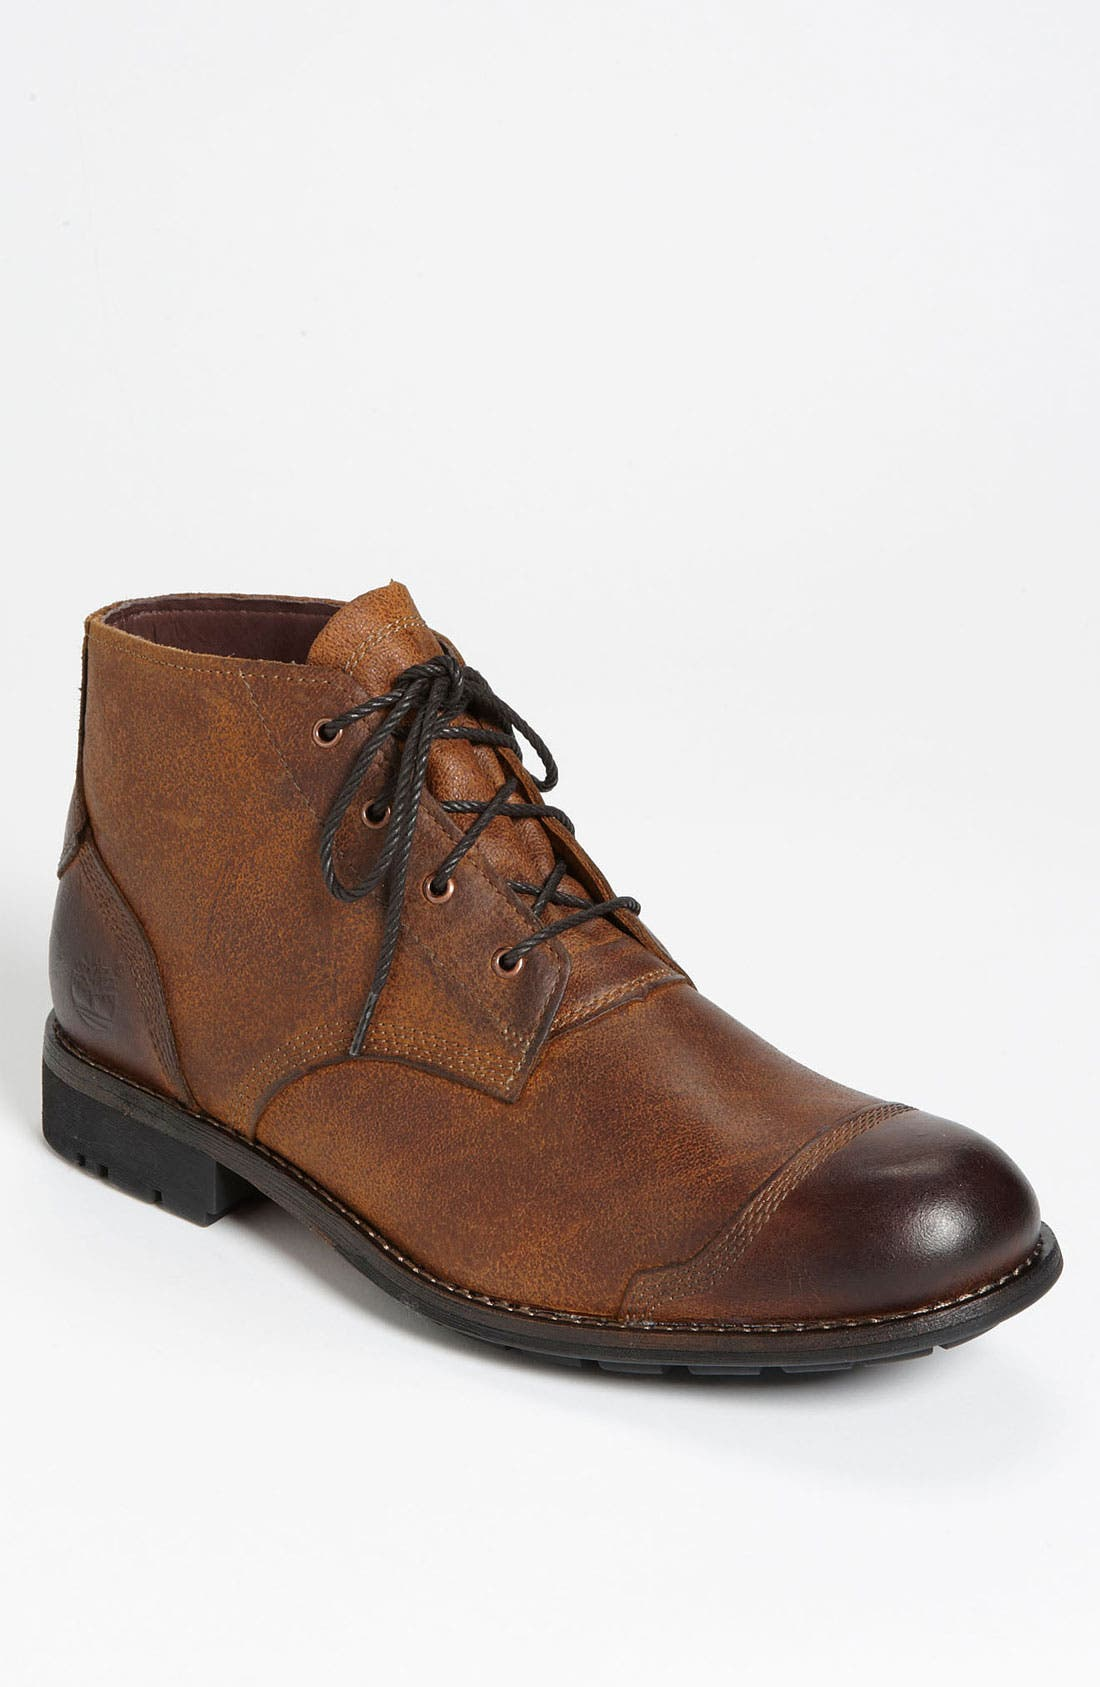 Alternate Image 1 Selected - Timberland Earthkeepers® 'City' Cap Toe Chukka Boot